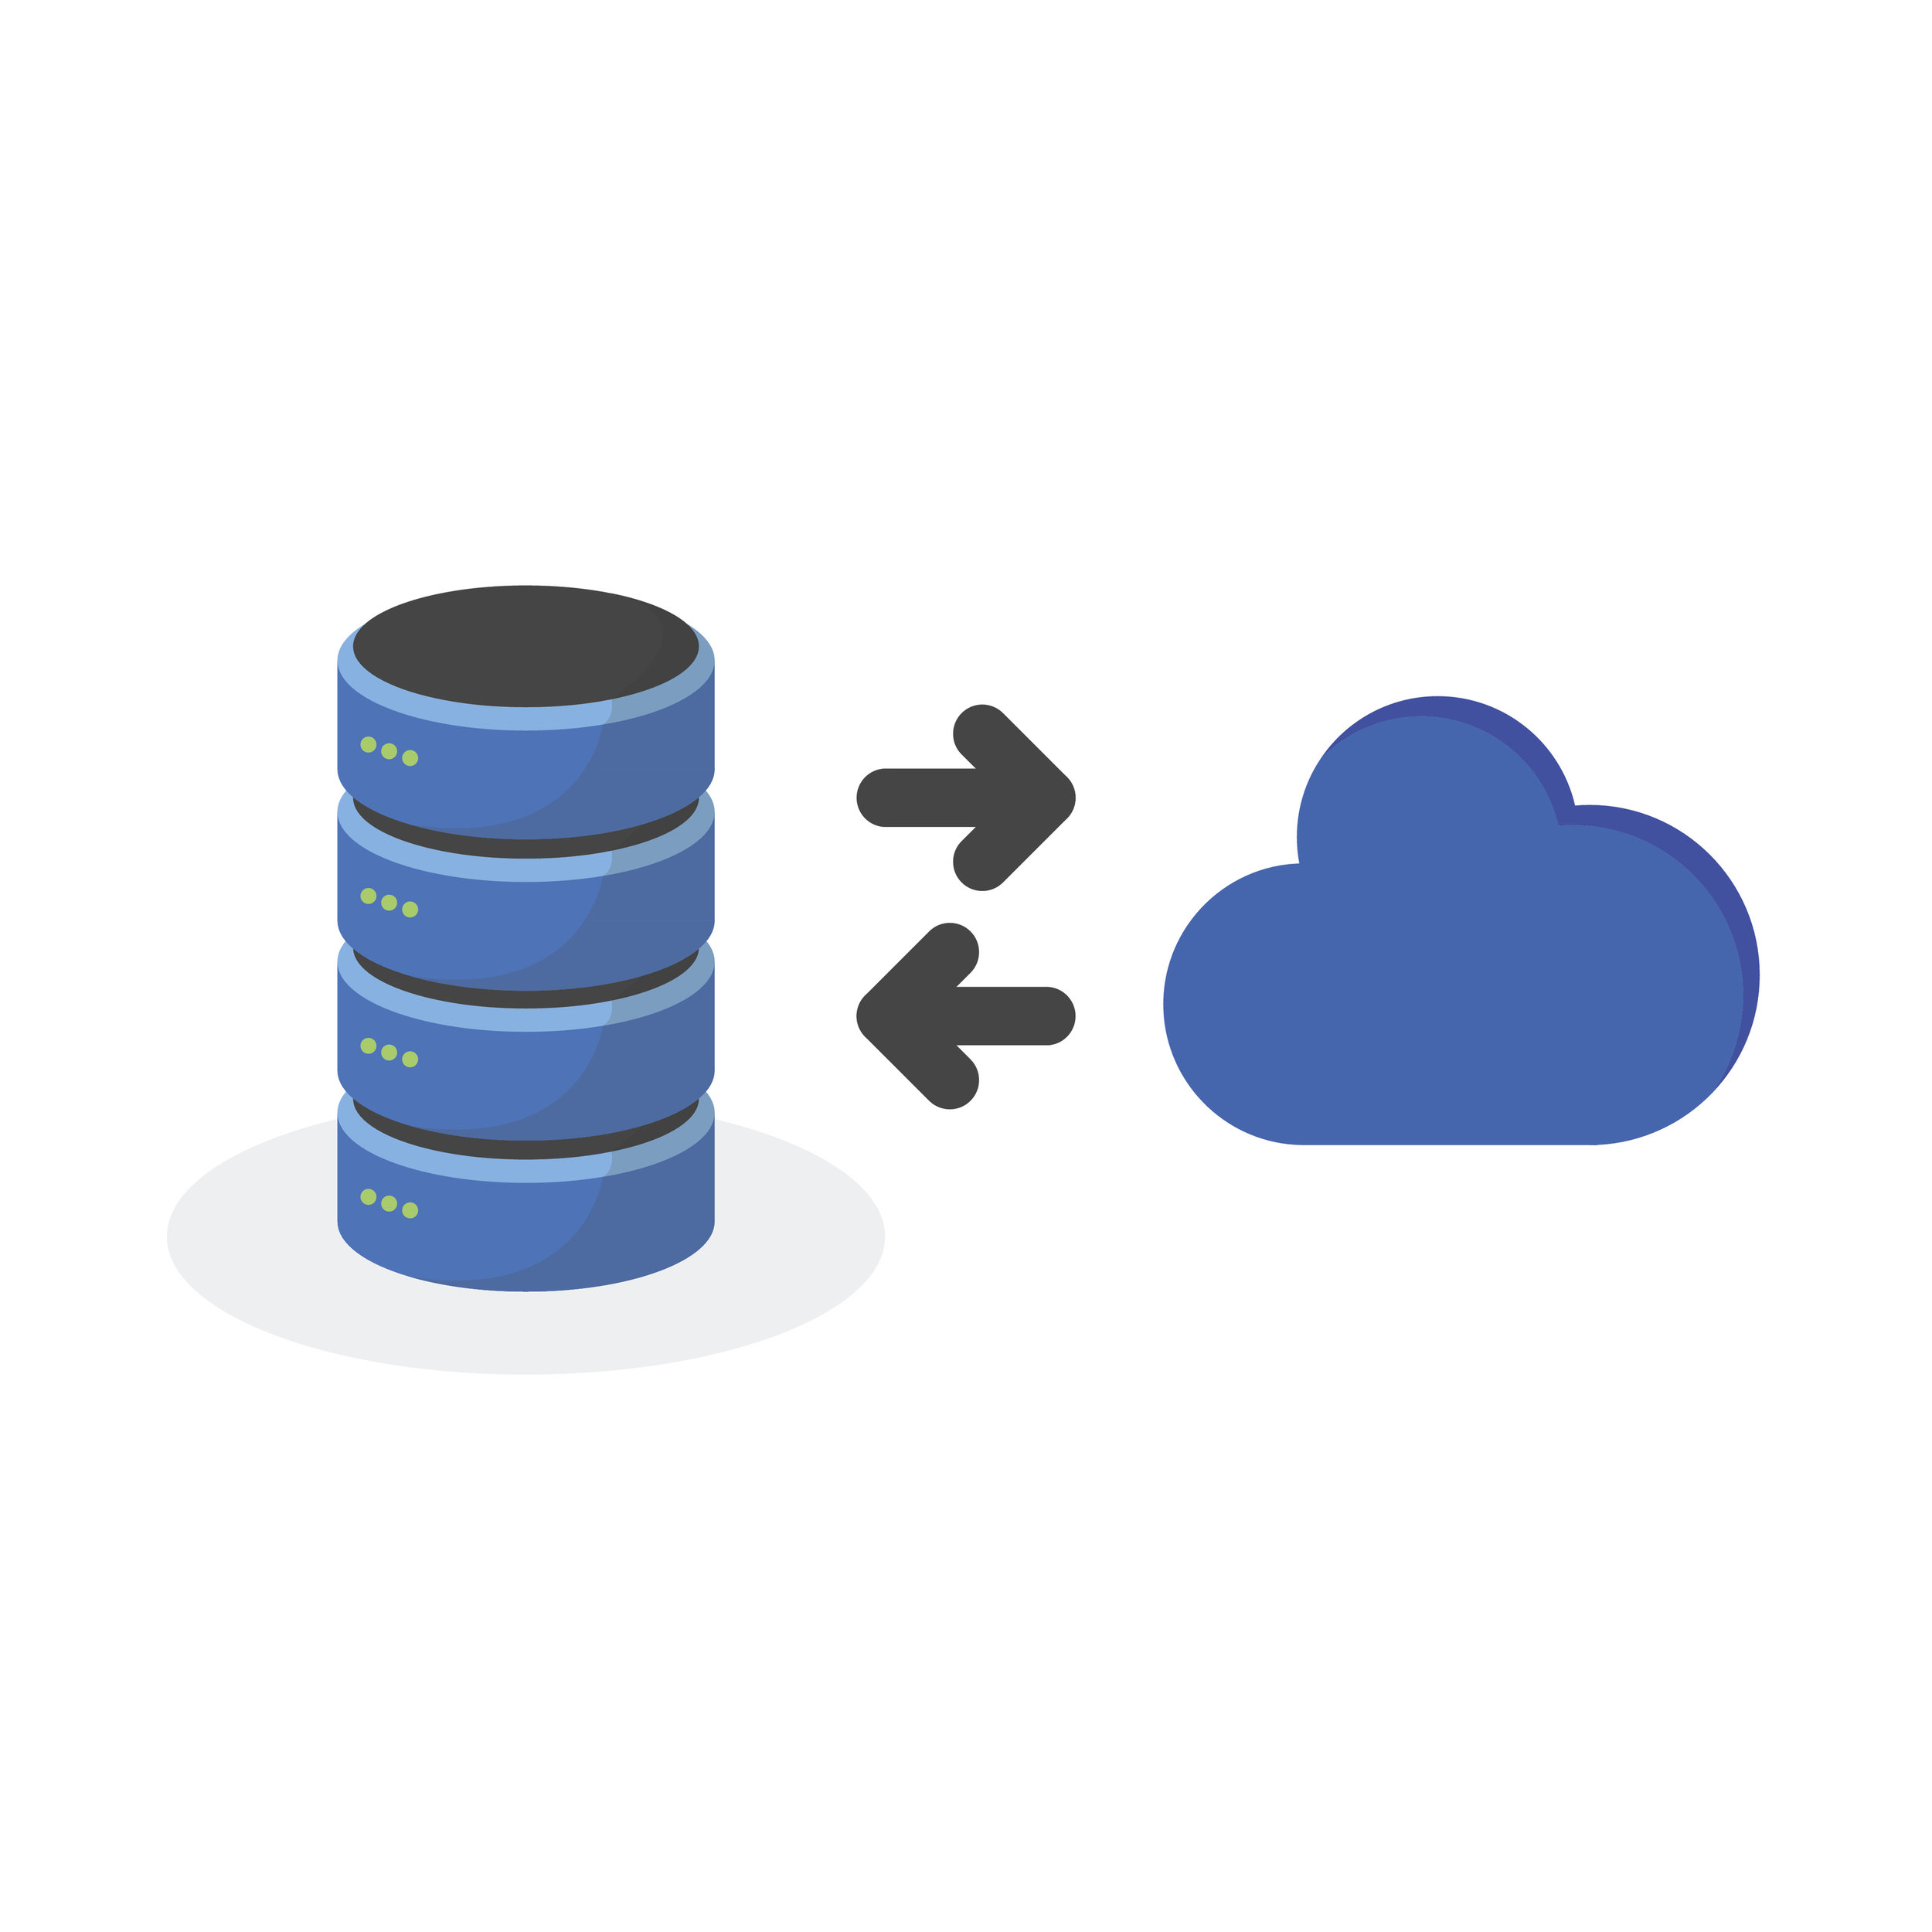 Hybrid Cloud File Storage  Universally accessible File Storage with configurable and flexible access permission structure. Cloud storage for accessibility with offline-able local content for speed and redundancy.  Available with Enhanced Admin & Active Directory integration.